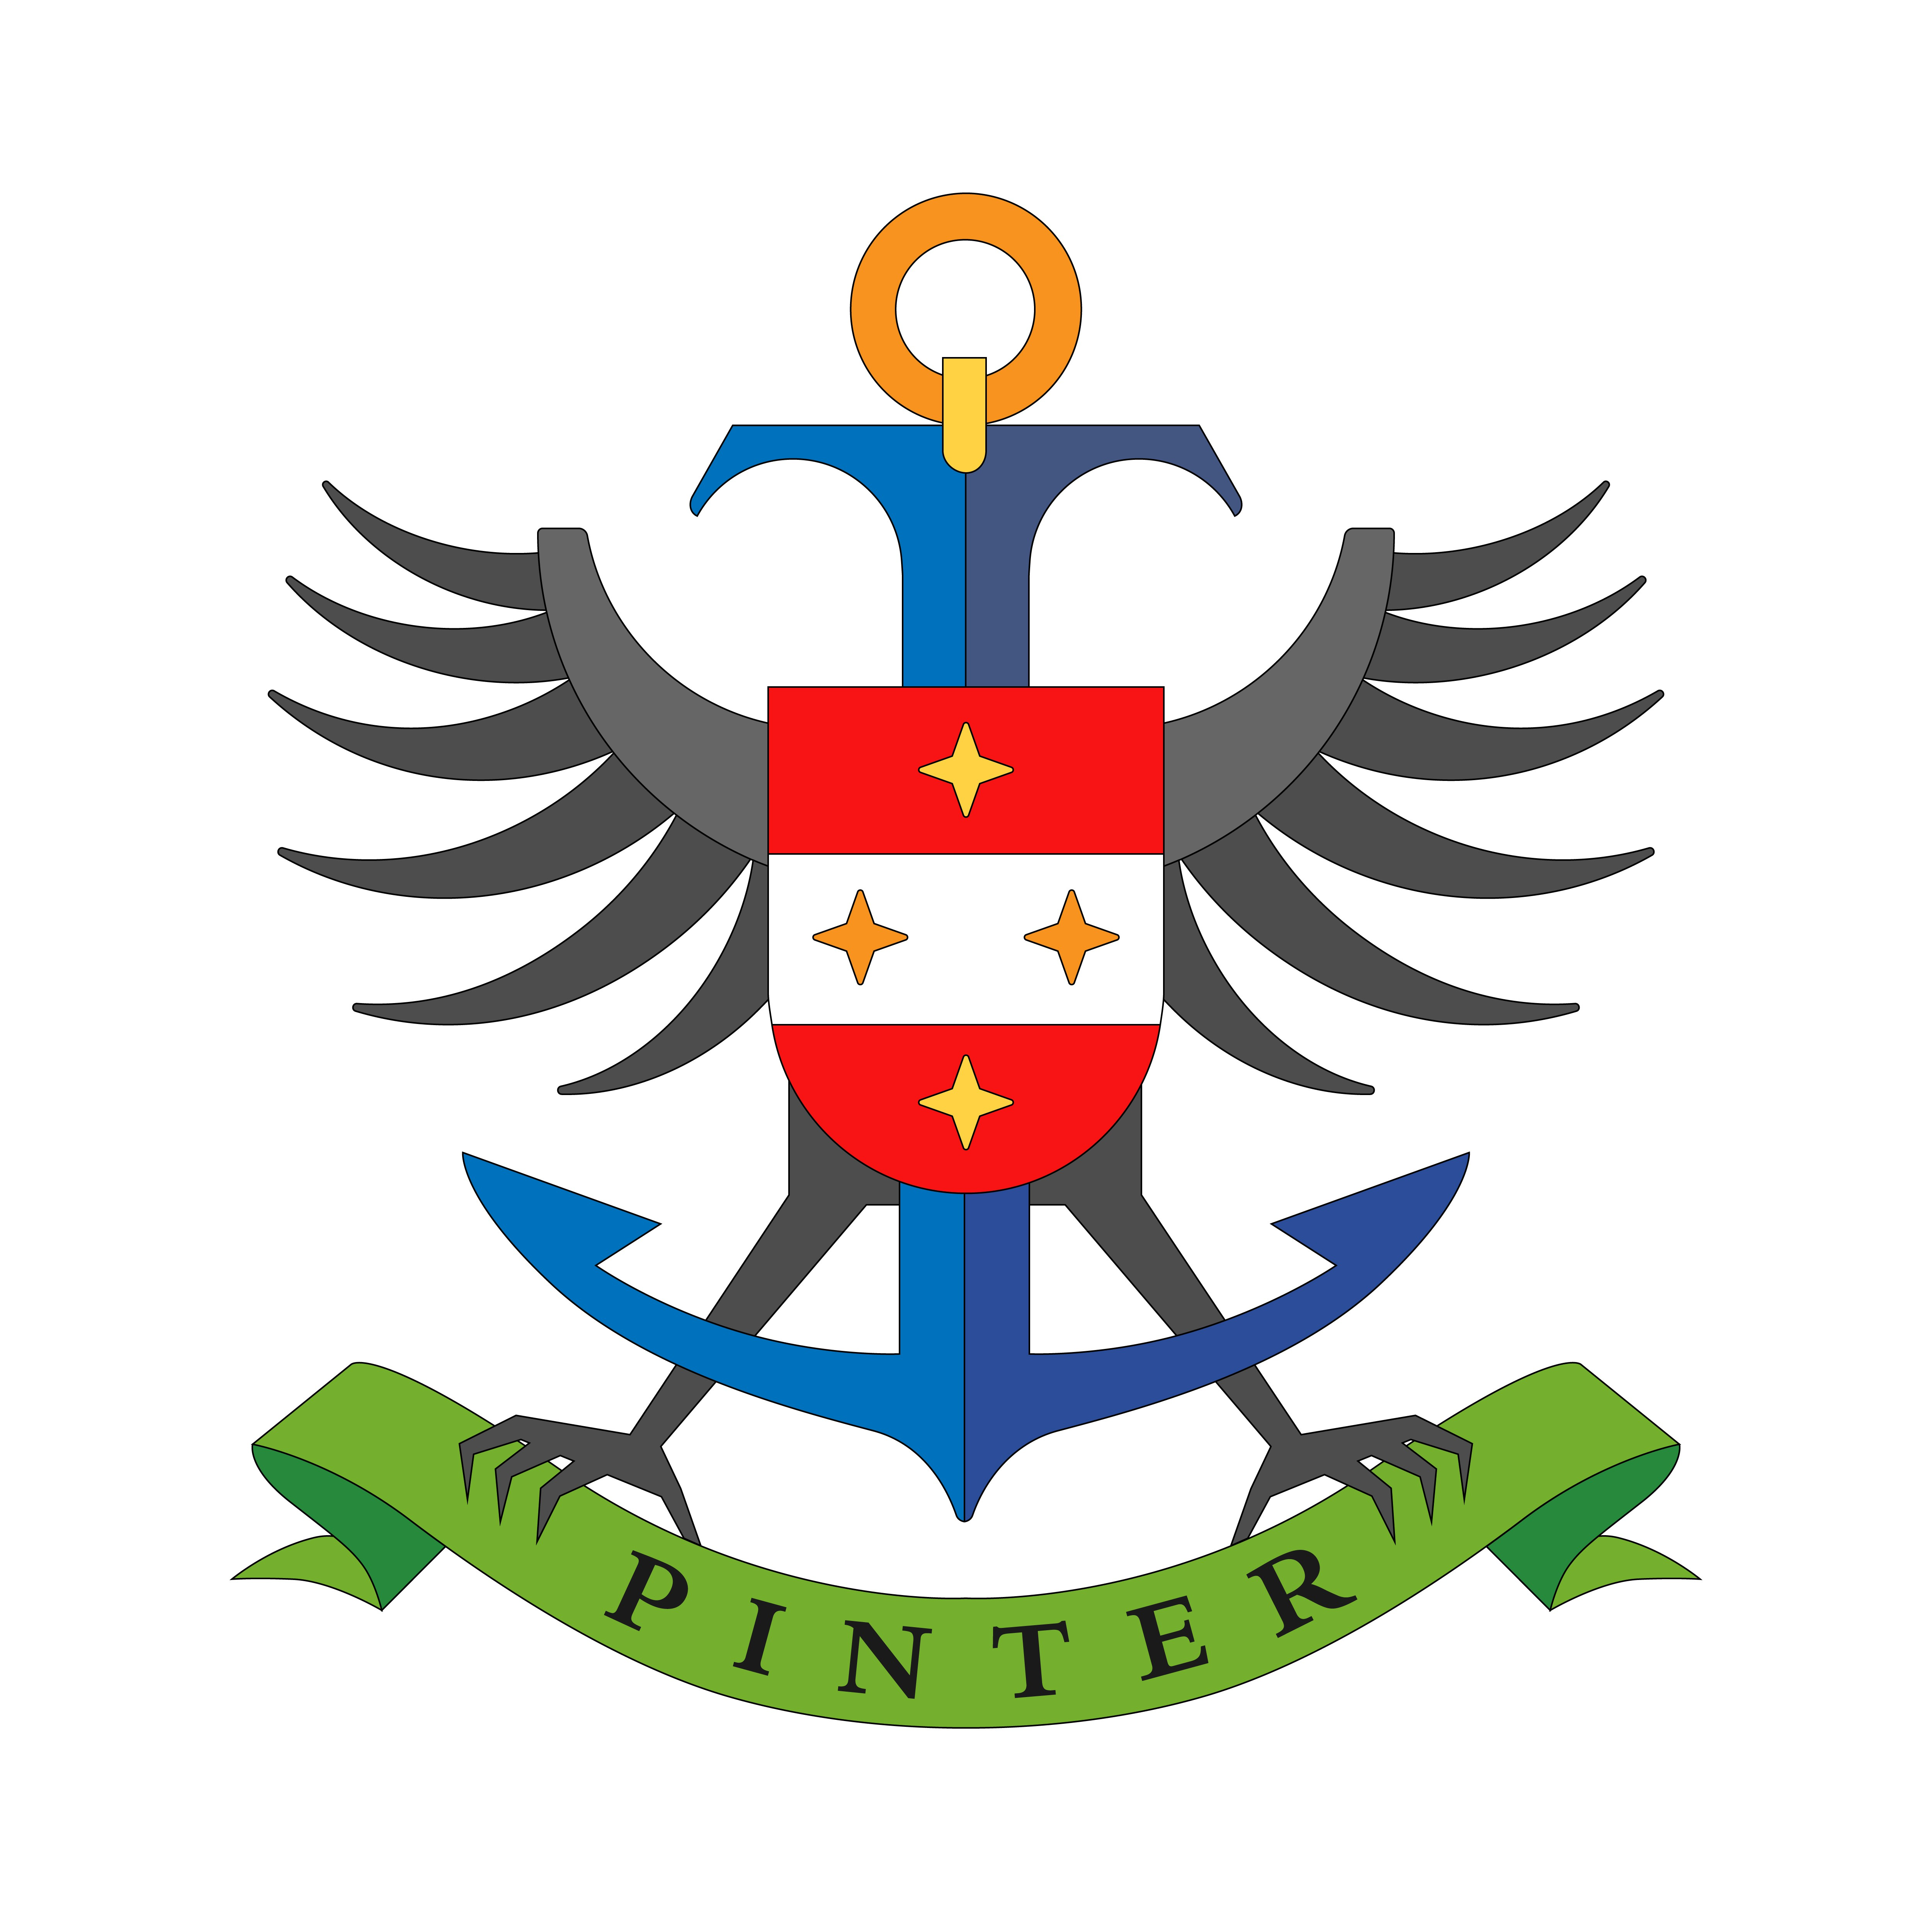 We need a logo/family crest, we are not a company but a real private family